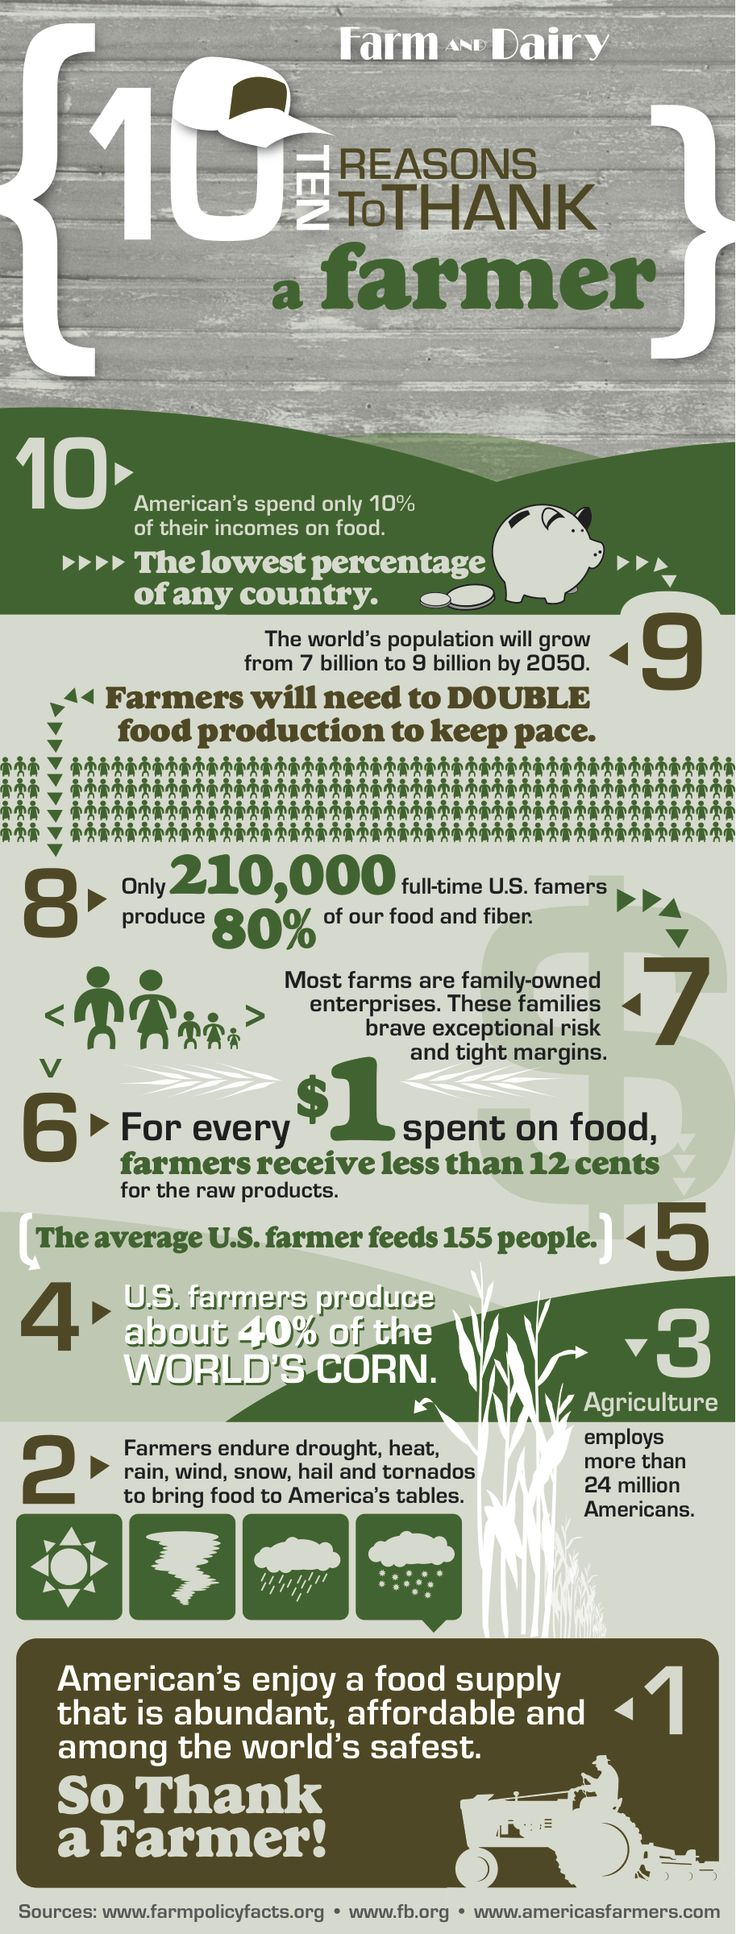 We're celebrating National Agriculture Day with a nifty infographic. Here's 10 reasons to thank a farmer!